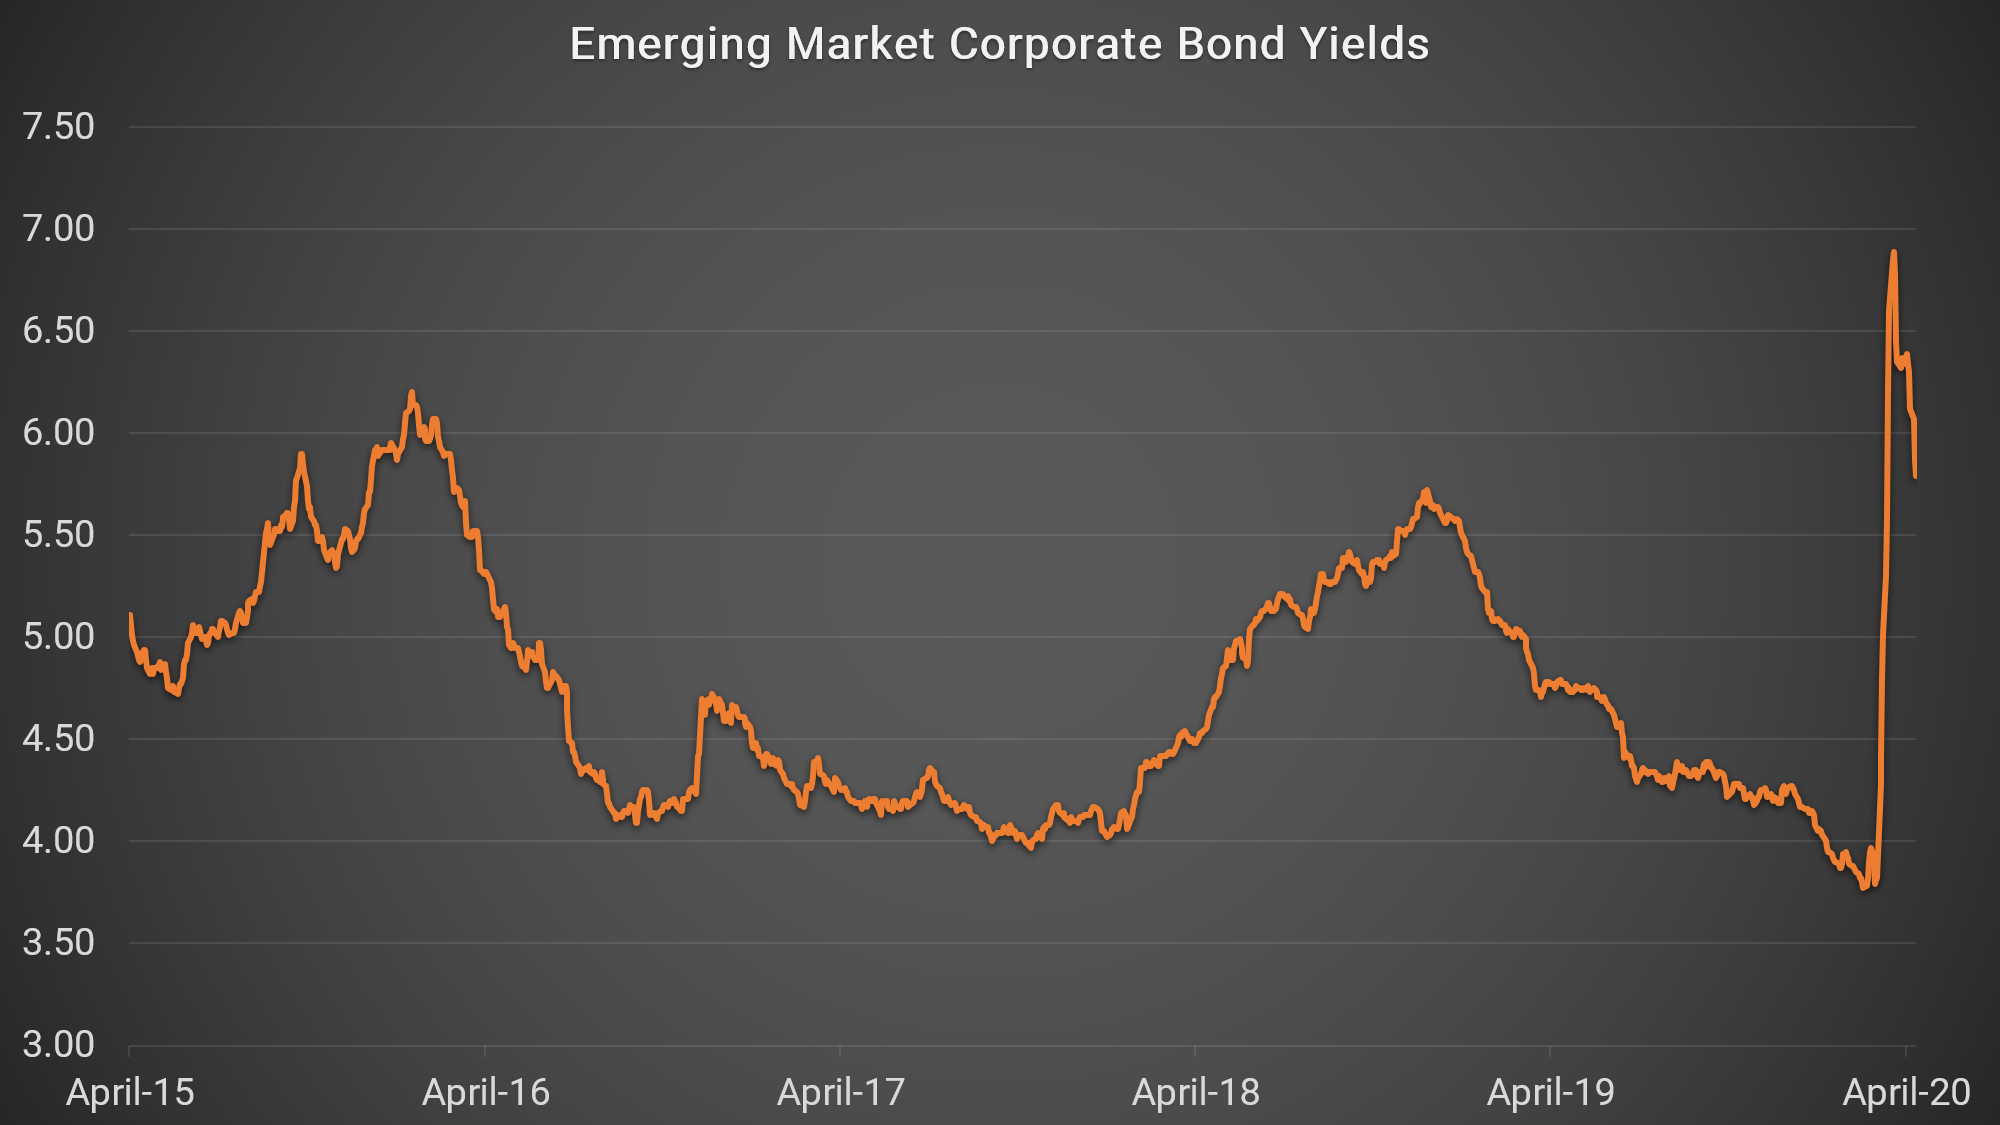 According to the Institute of International Finance, a record $83 billion flowed out of emerging market shares and bonds in March as investors fled to the safety of US Treasuries and other dollar- and euro-denominated assets. These outflows sent emerging market stock markets crashing and led to spikes in bond yields.